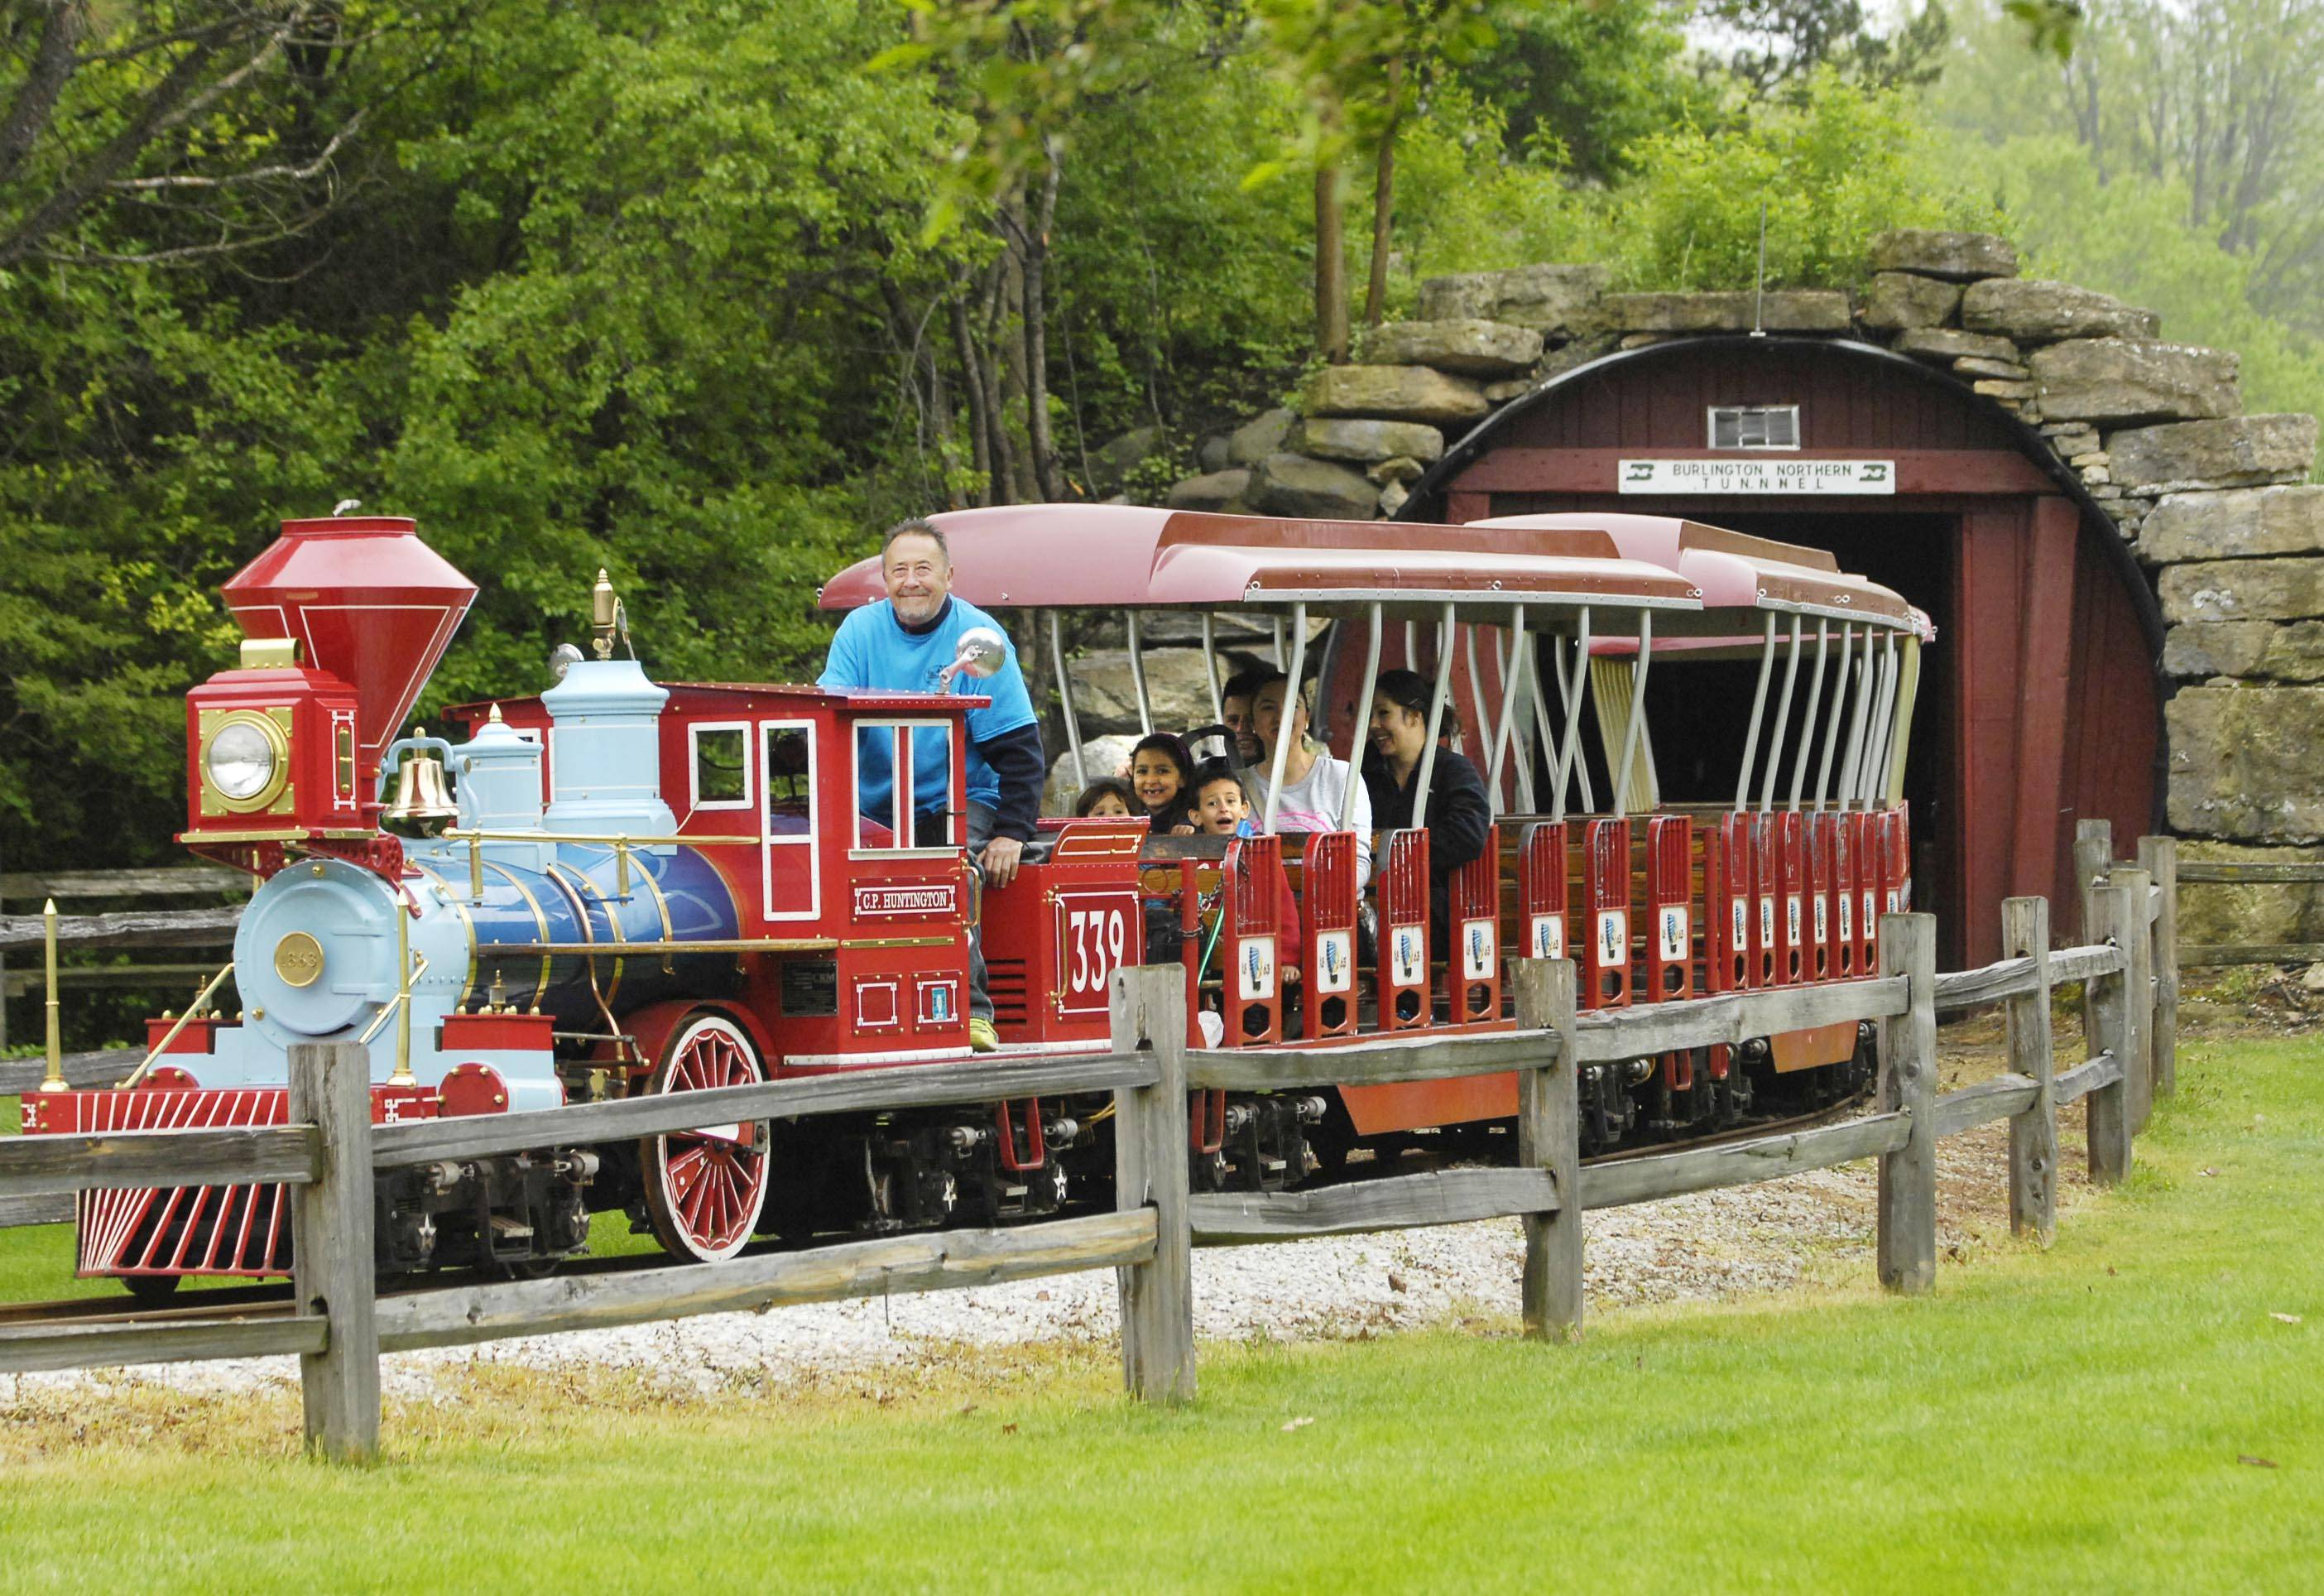 Families take a train ride at Blackberry Farm on Barnes Road in Aurora. The farm, part of the Fox Valley Park District, is a living history museum with plenty of activities for families.